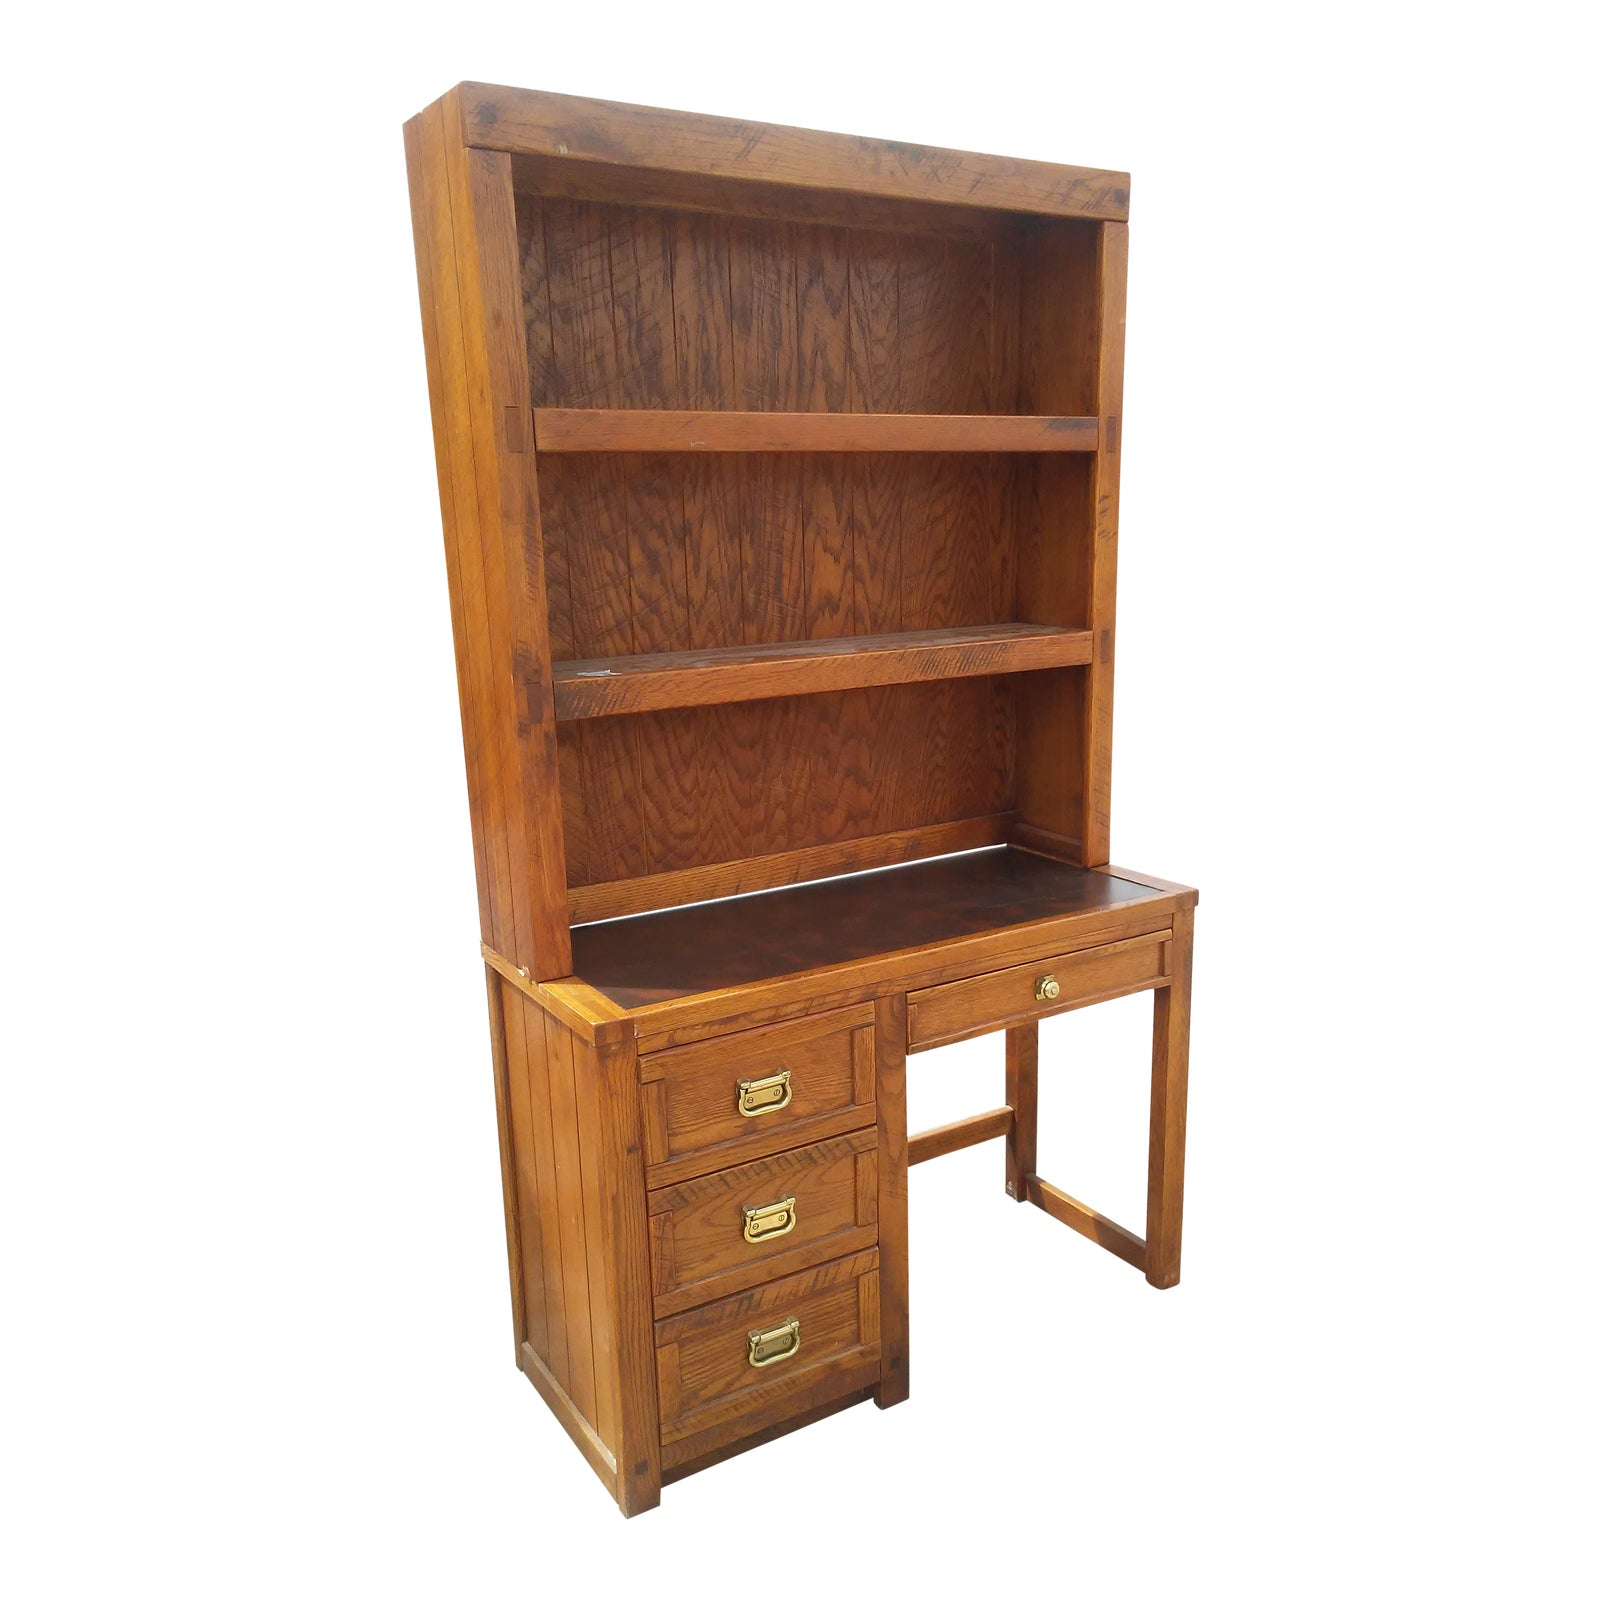 Vintage Young and Hinkle Outrigger Desk With Bookshelf Hutch